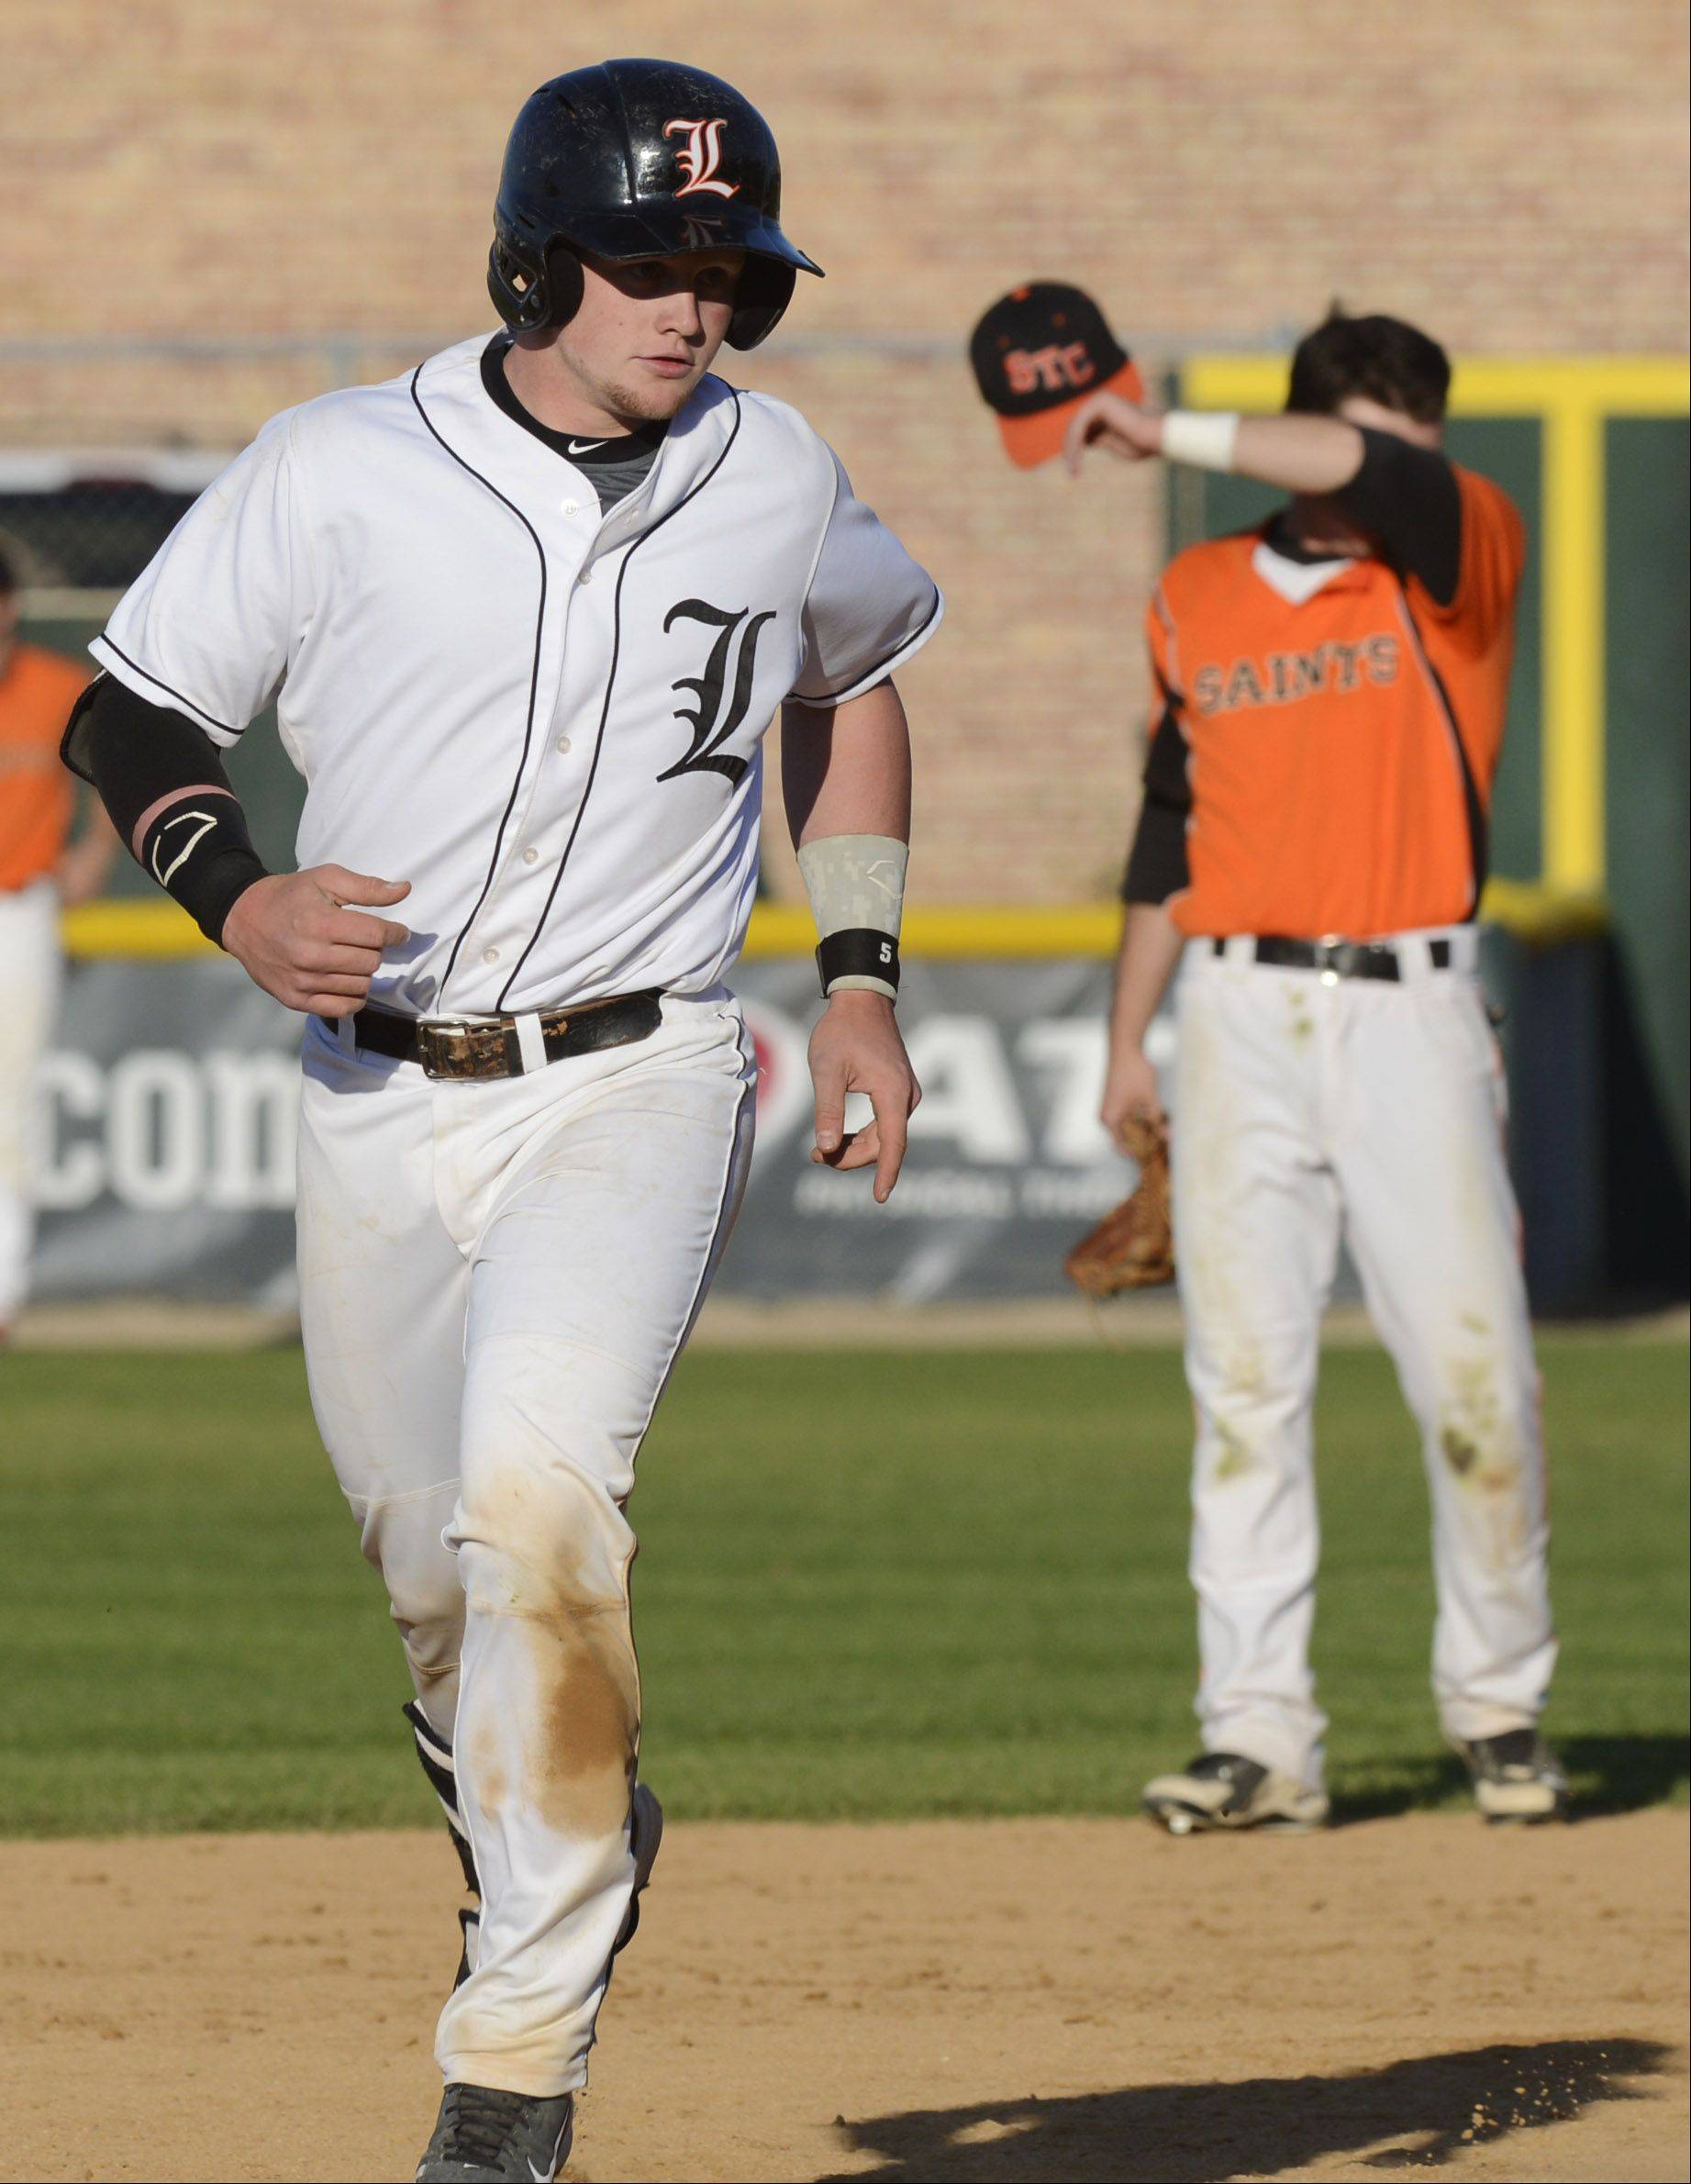 Libertyville's Evan Skoug rounds the bases after hitting a fourth-inning grand slam against St. Charles East during the Class 4A state baseball semifinals at Silver Cross Field in Joliet Friday.